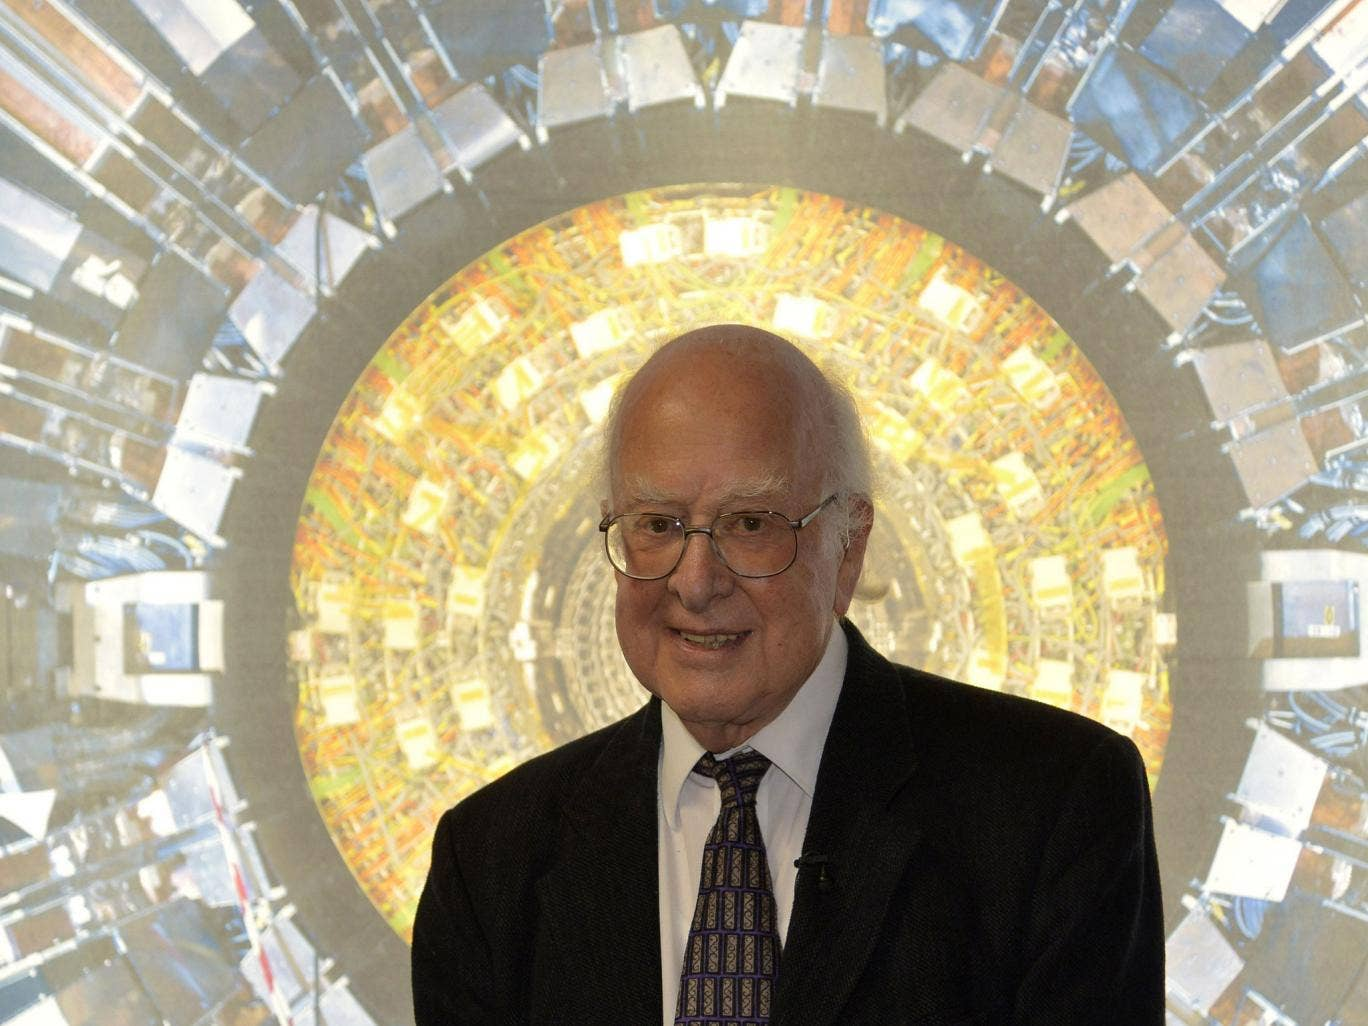 Peter Higgs is to be honoured with a new £11m space technology centre named after him